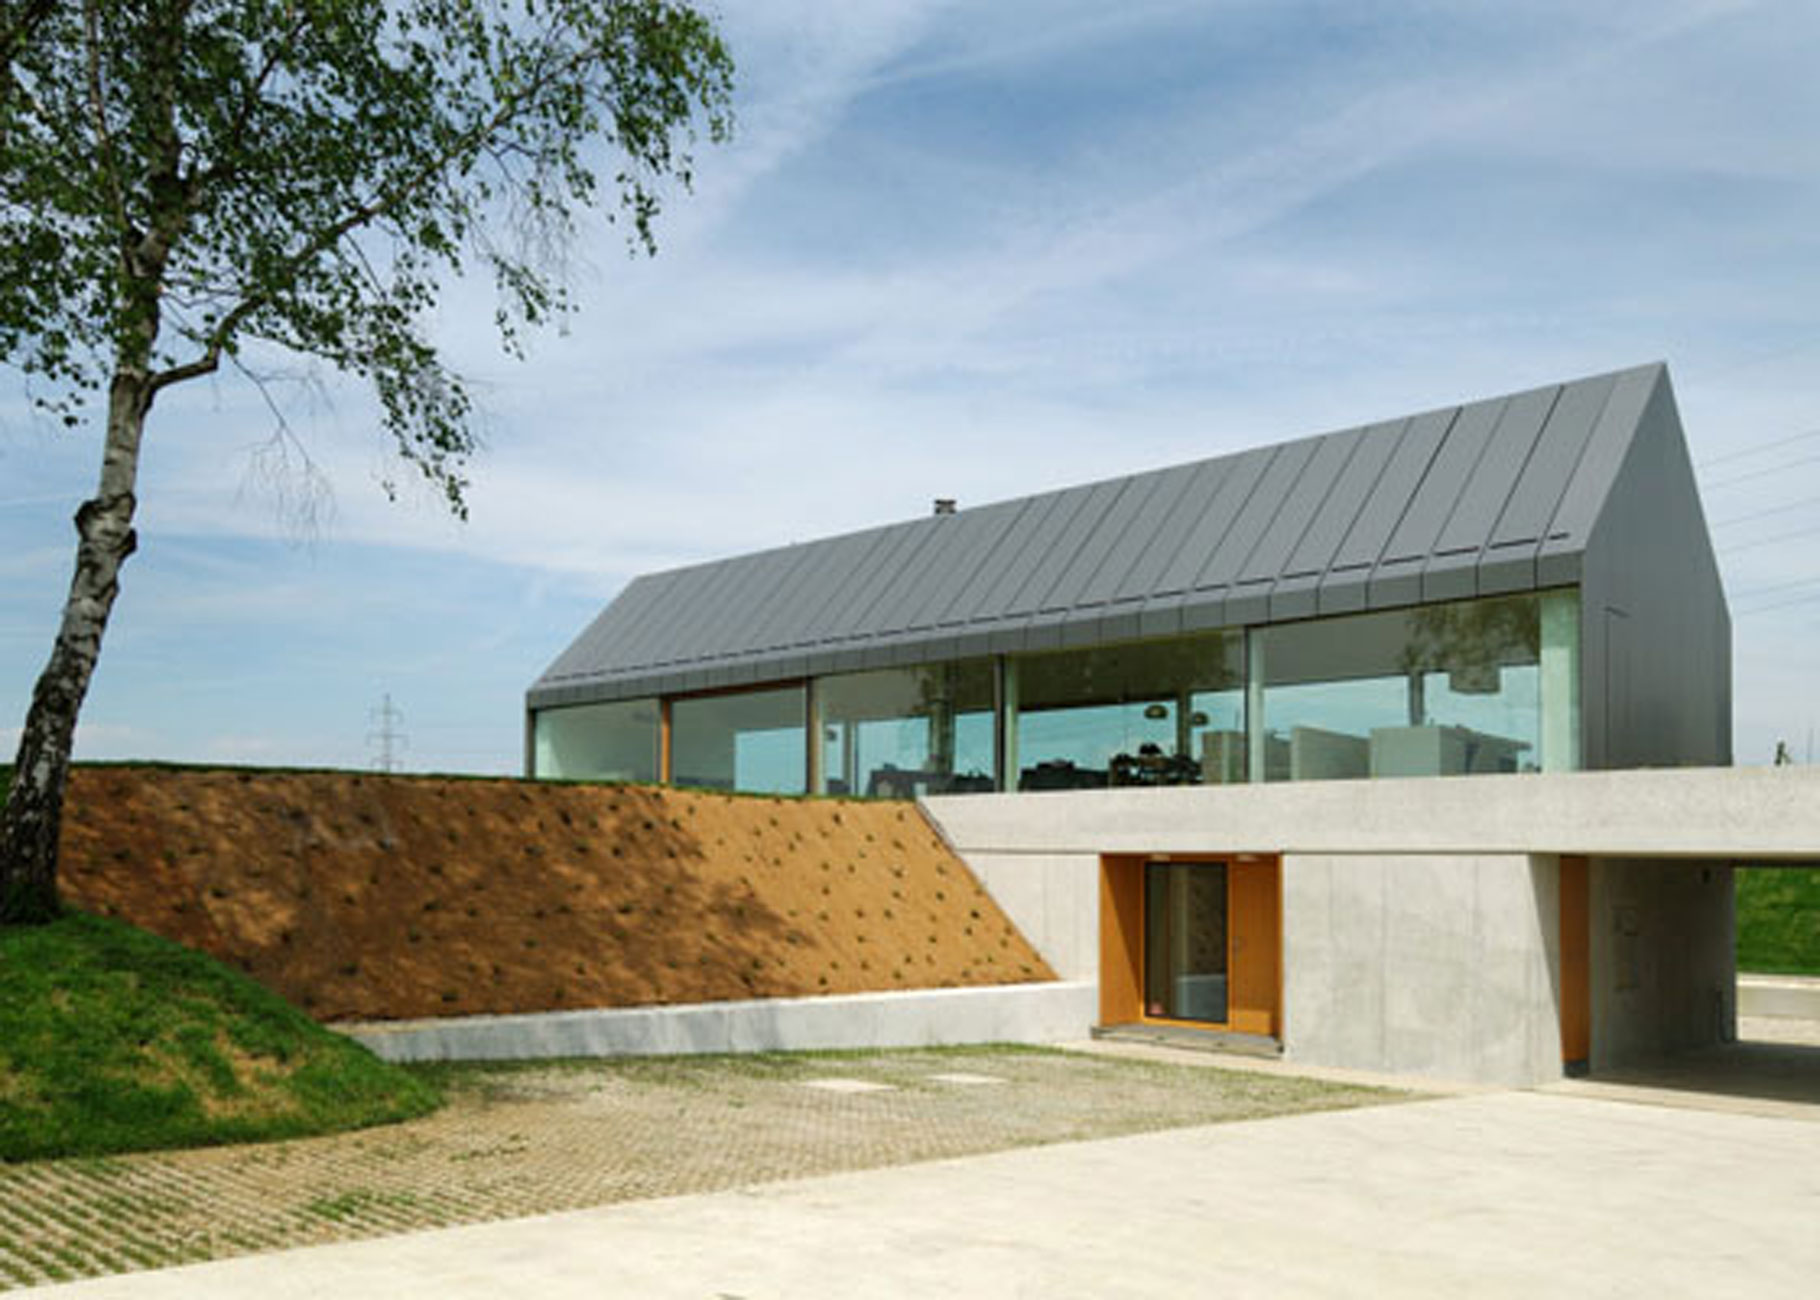 Barn Architecture Beautiful Environment For An Urban Barn House Viahouse Com